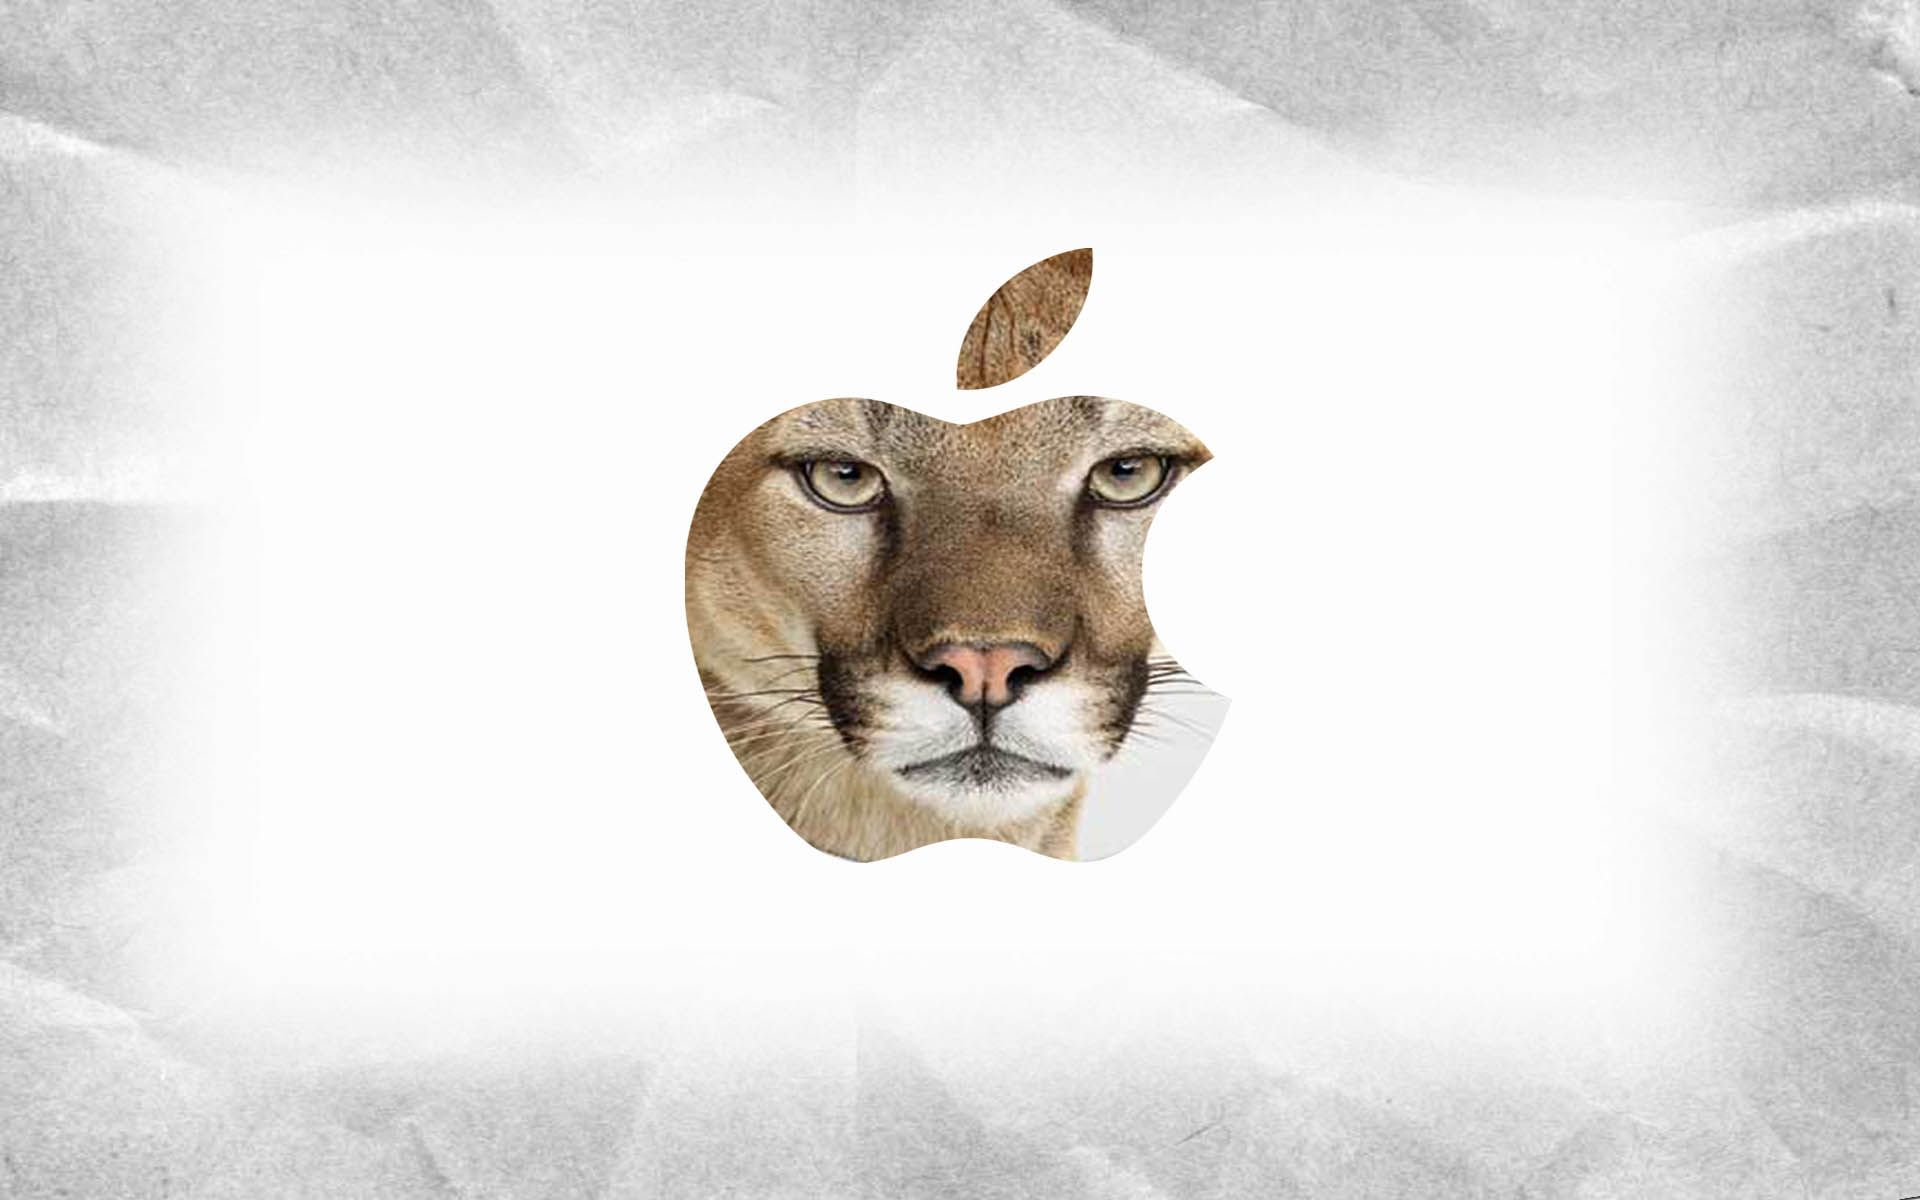 os x mountain lion hd desktop wallpaper high definition mac lion wallpapers hd wallpapers